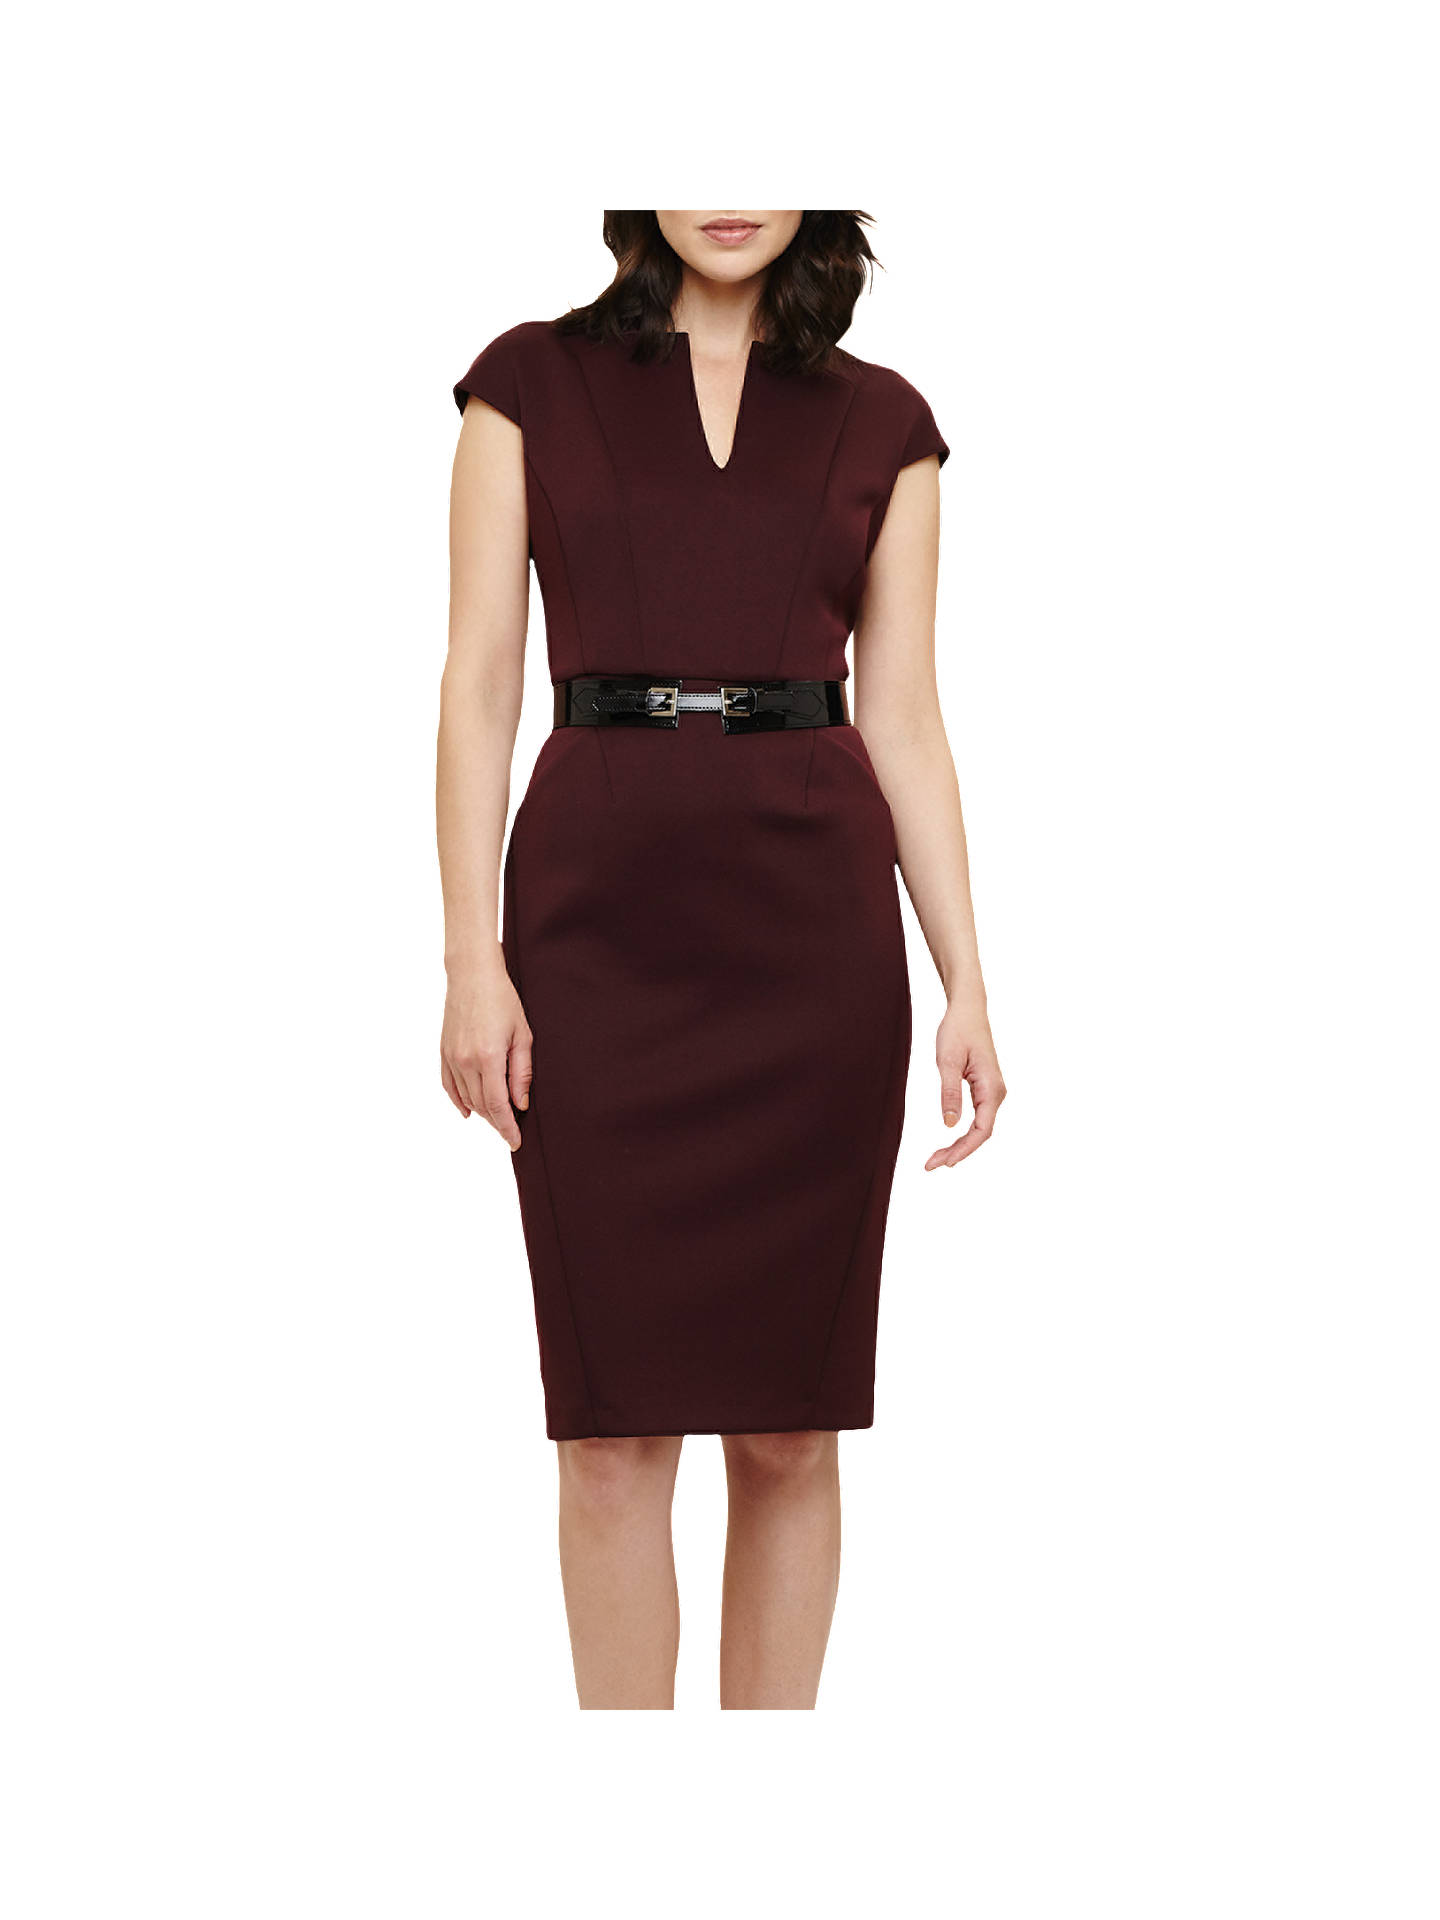 c3bf3c37225a7 Phase Eight Abby Belted Scuba Dress, Claret